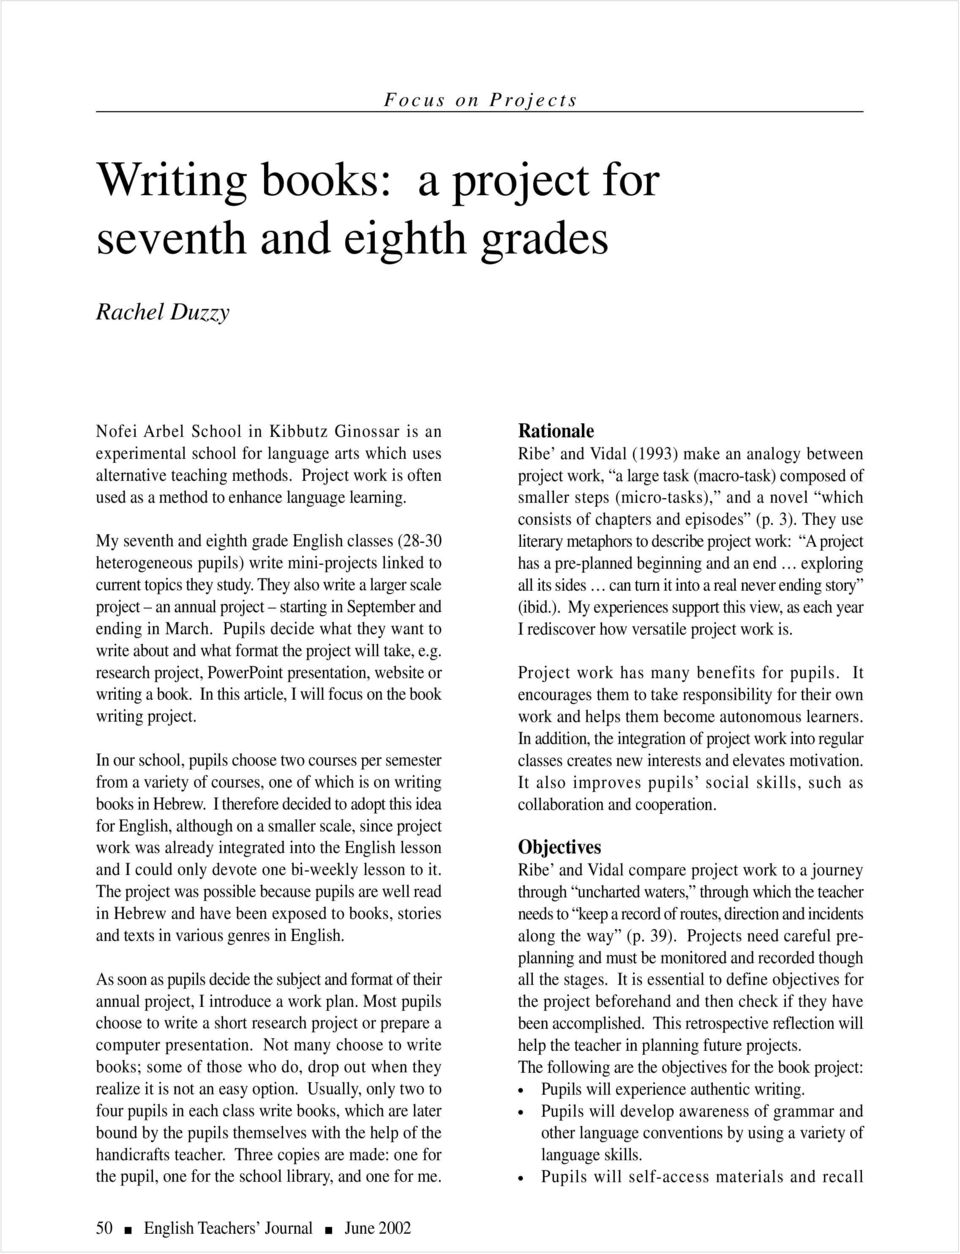 Writing books: a project for seventh and eighth grades - PDF